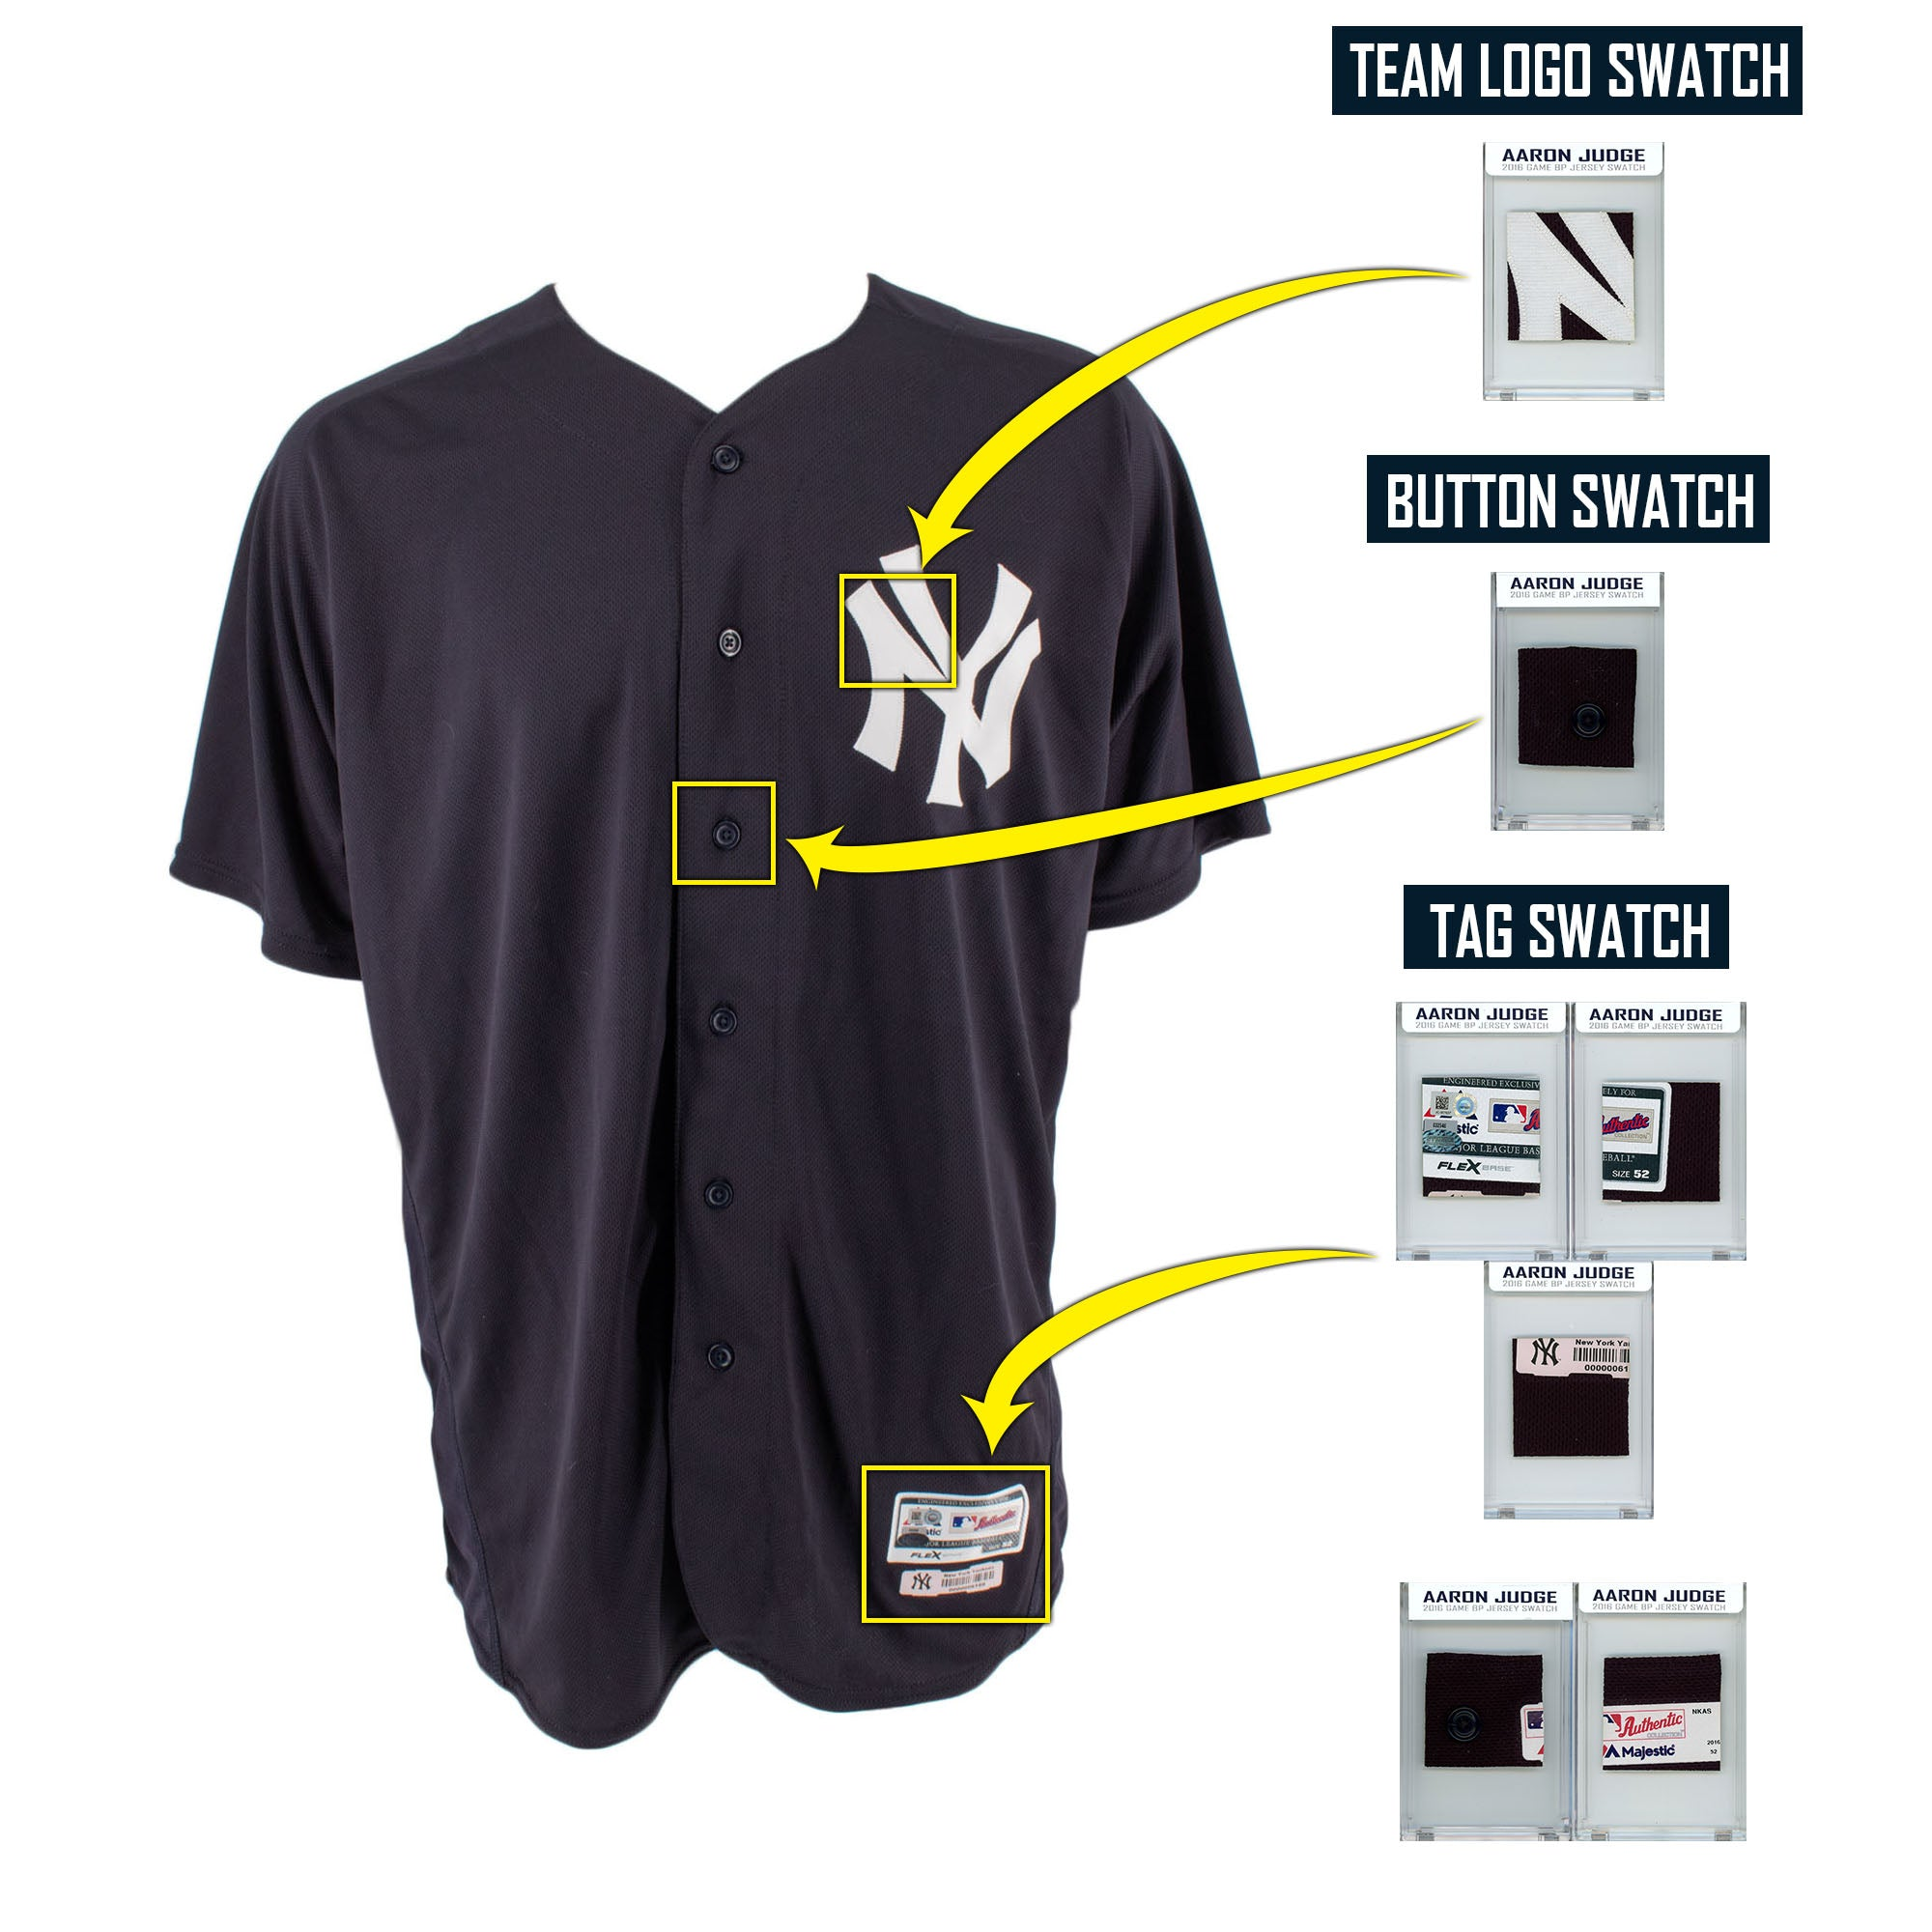 AARON JUDGE 2016 NY YANKEES GAME WORN BP JERSEY MYSTERY SWATCH BOX!